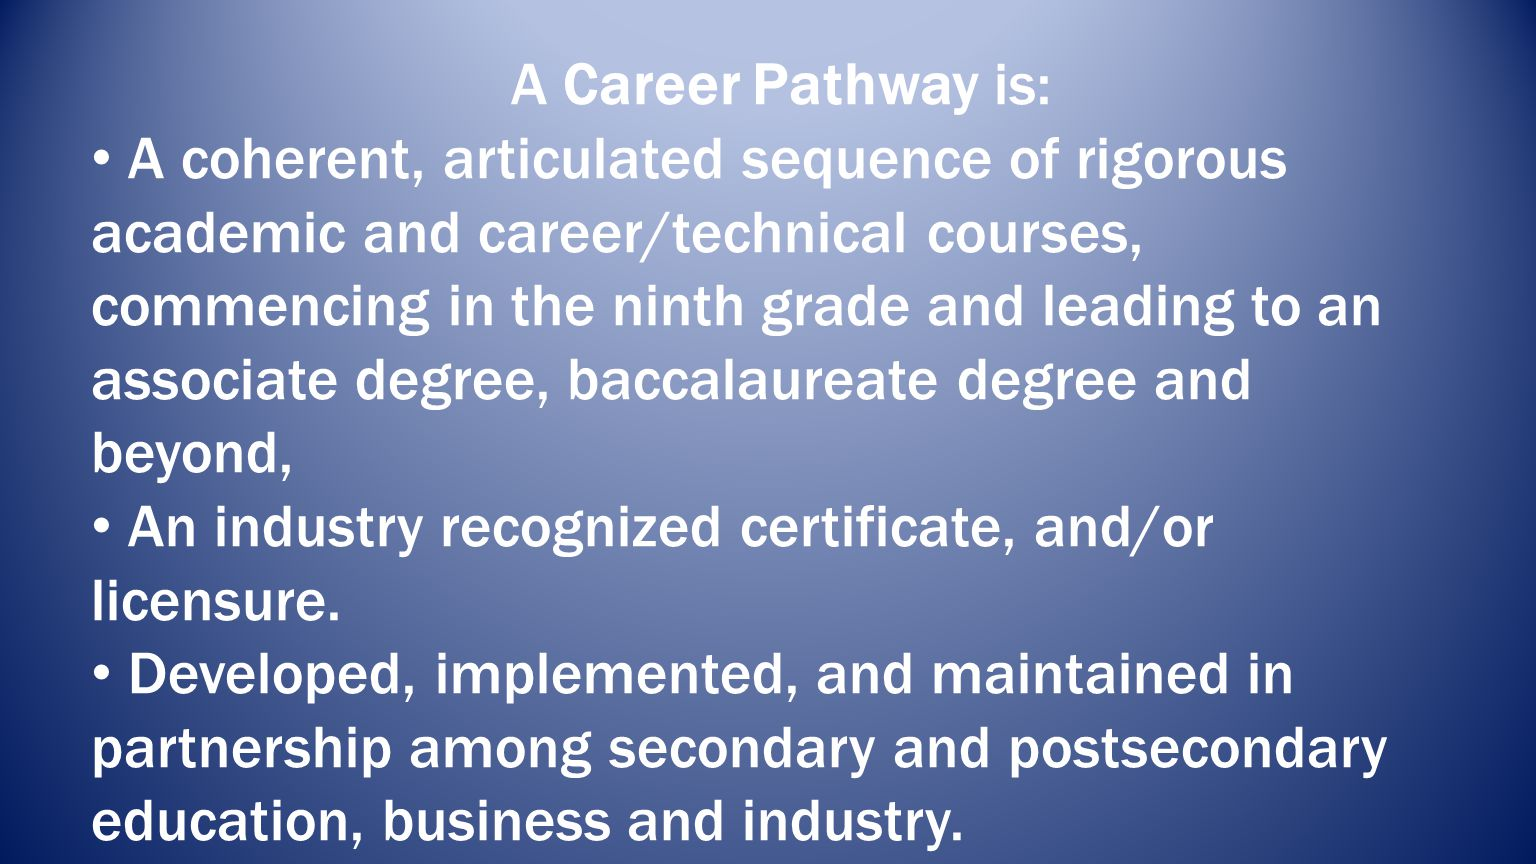 A Career Pathway is: A coherent, articulated sequence of rigorous academic and career/technical courses, commencing in the ninth grade and leading to an associate degree, baccalaureate degree and beyond, An industry recognized certificate, and/or licensure.